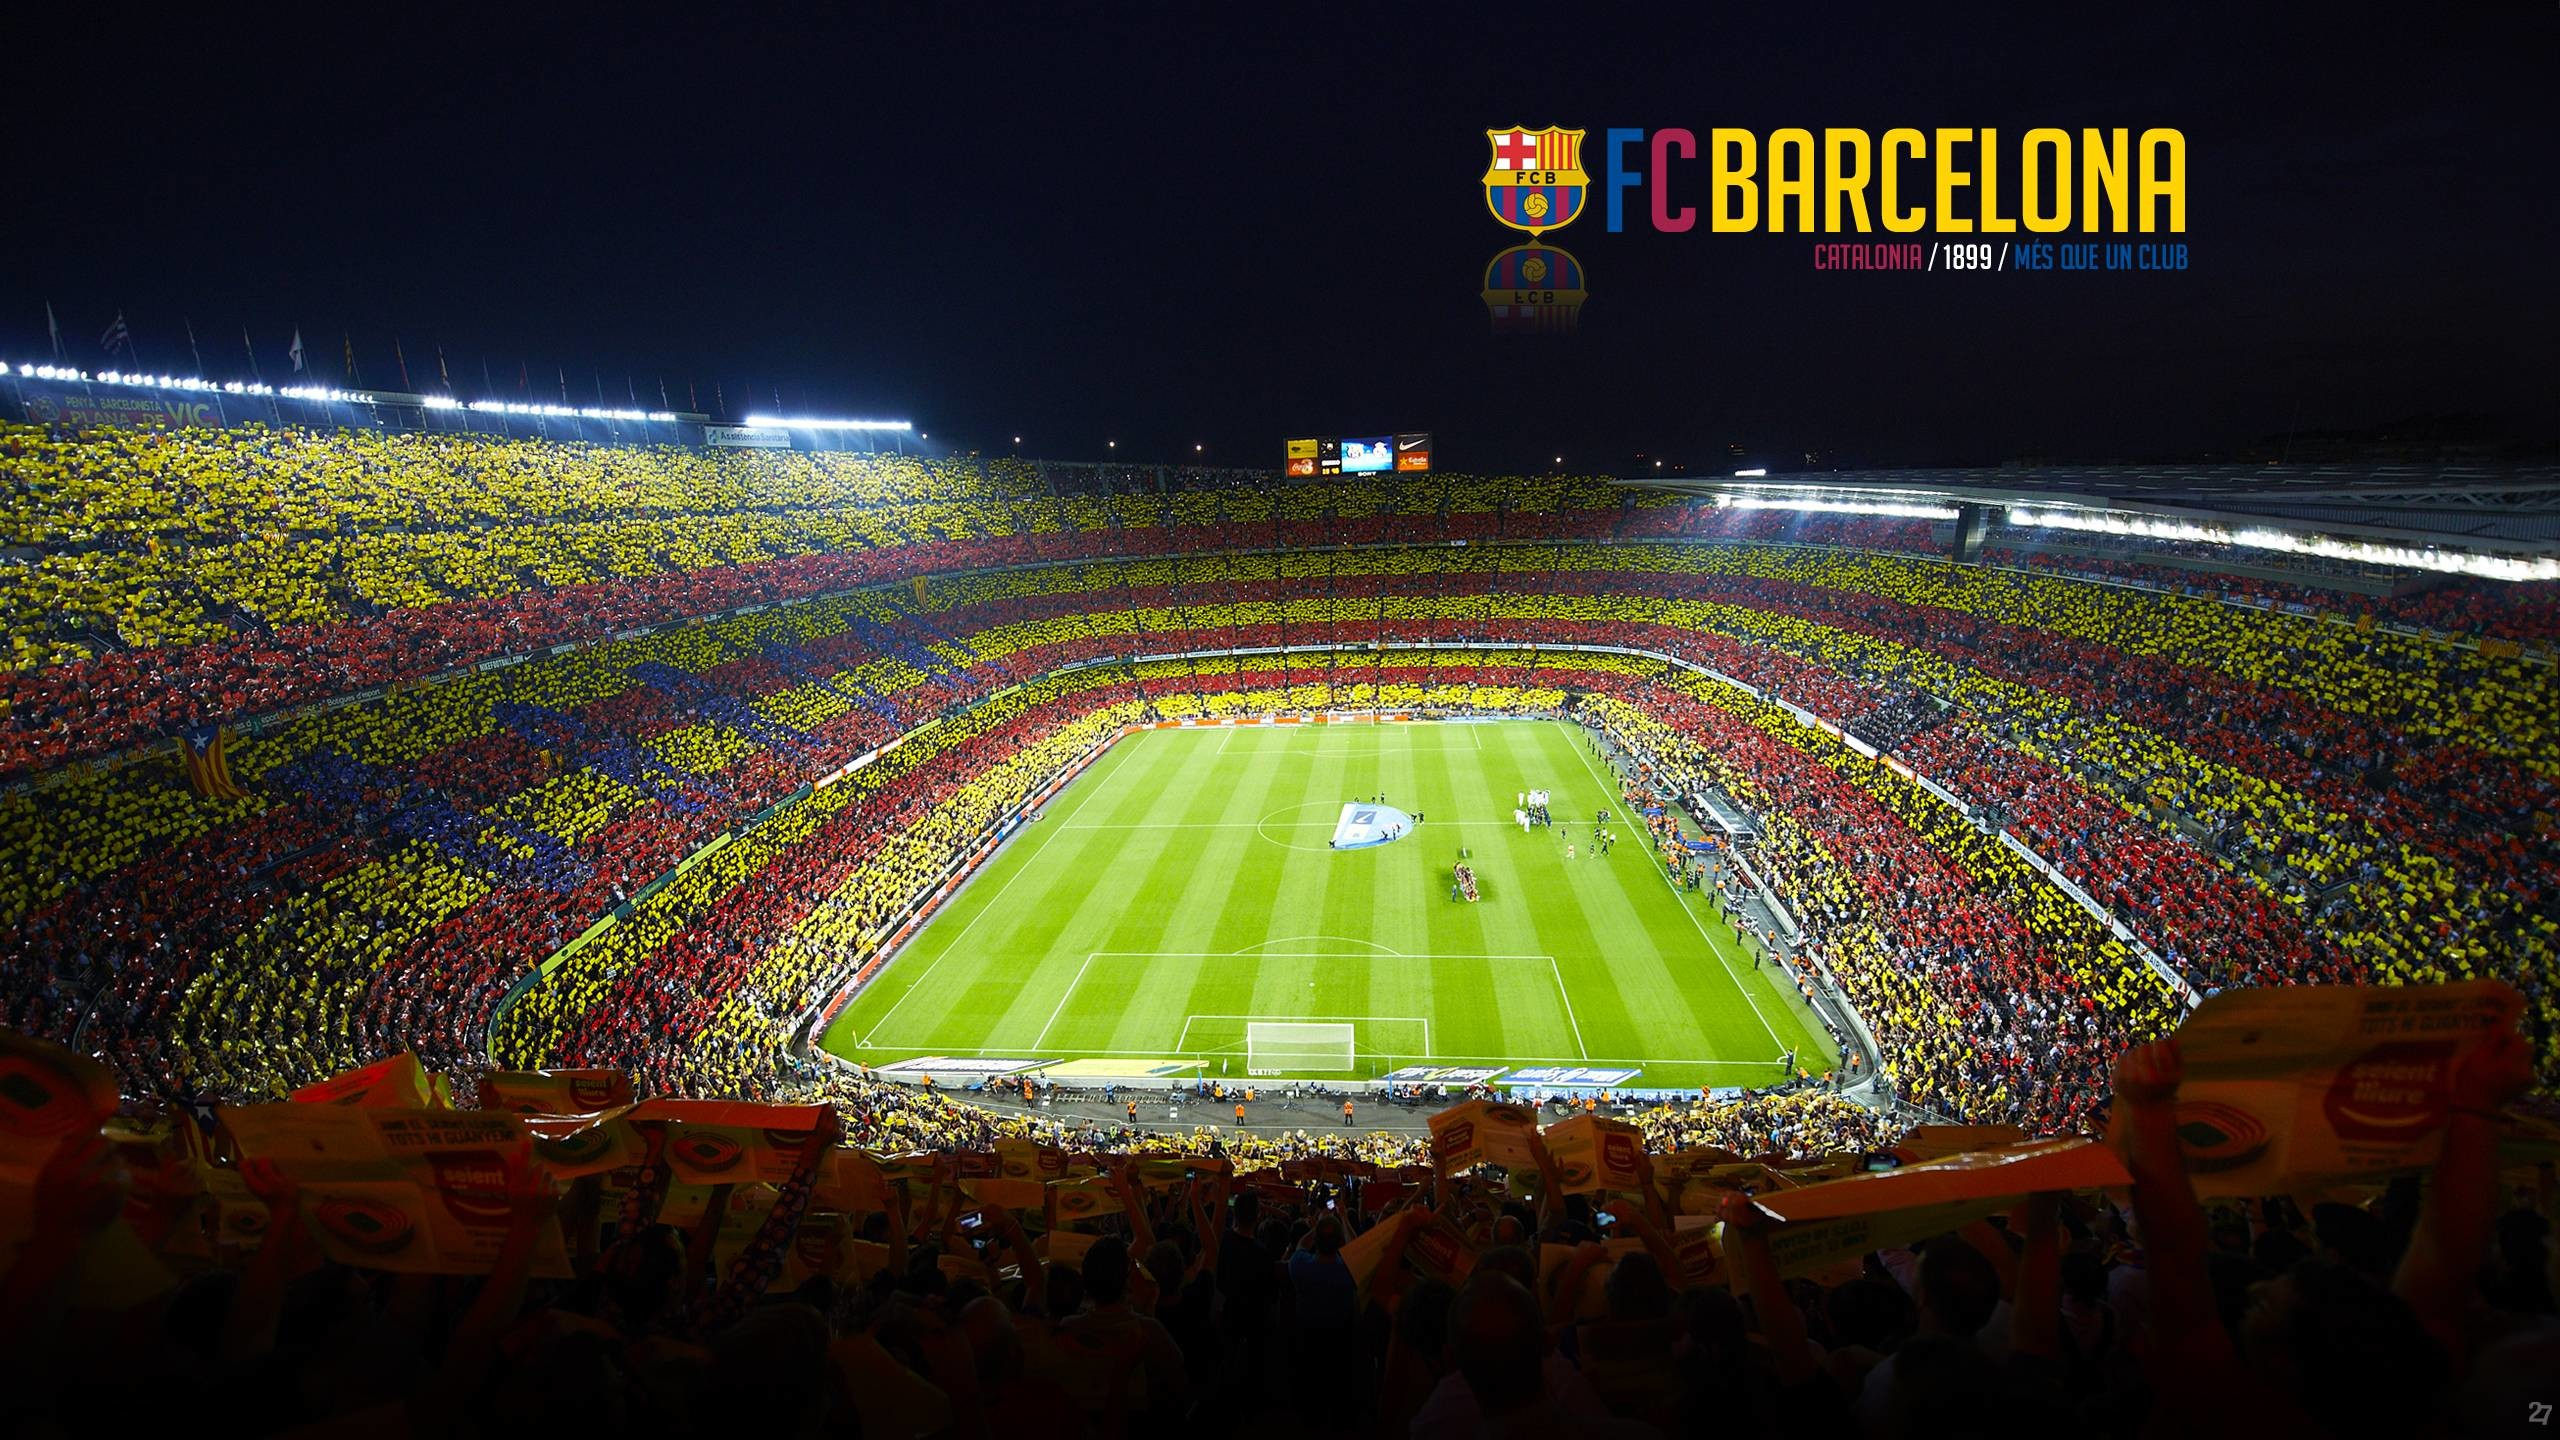 Nou camp wallpaper 76 images - Camp nou 4k wallpaper ...